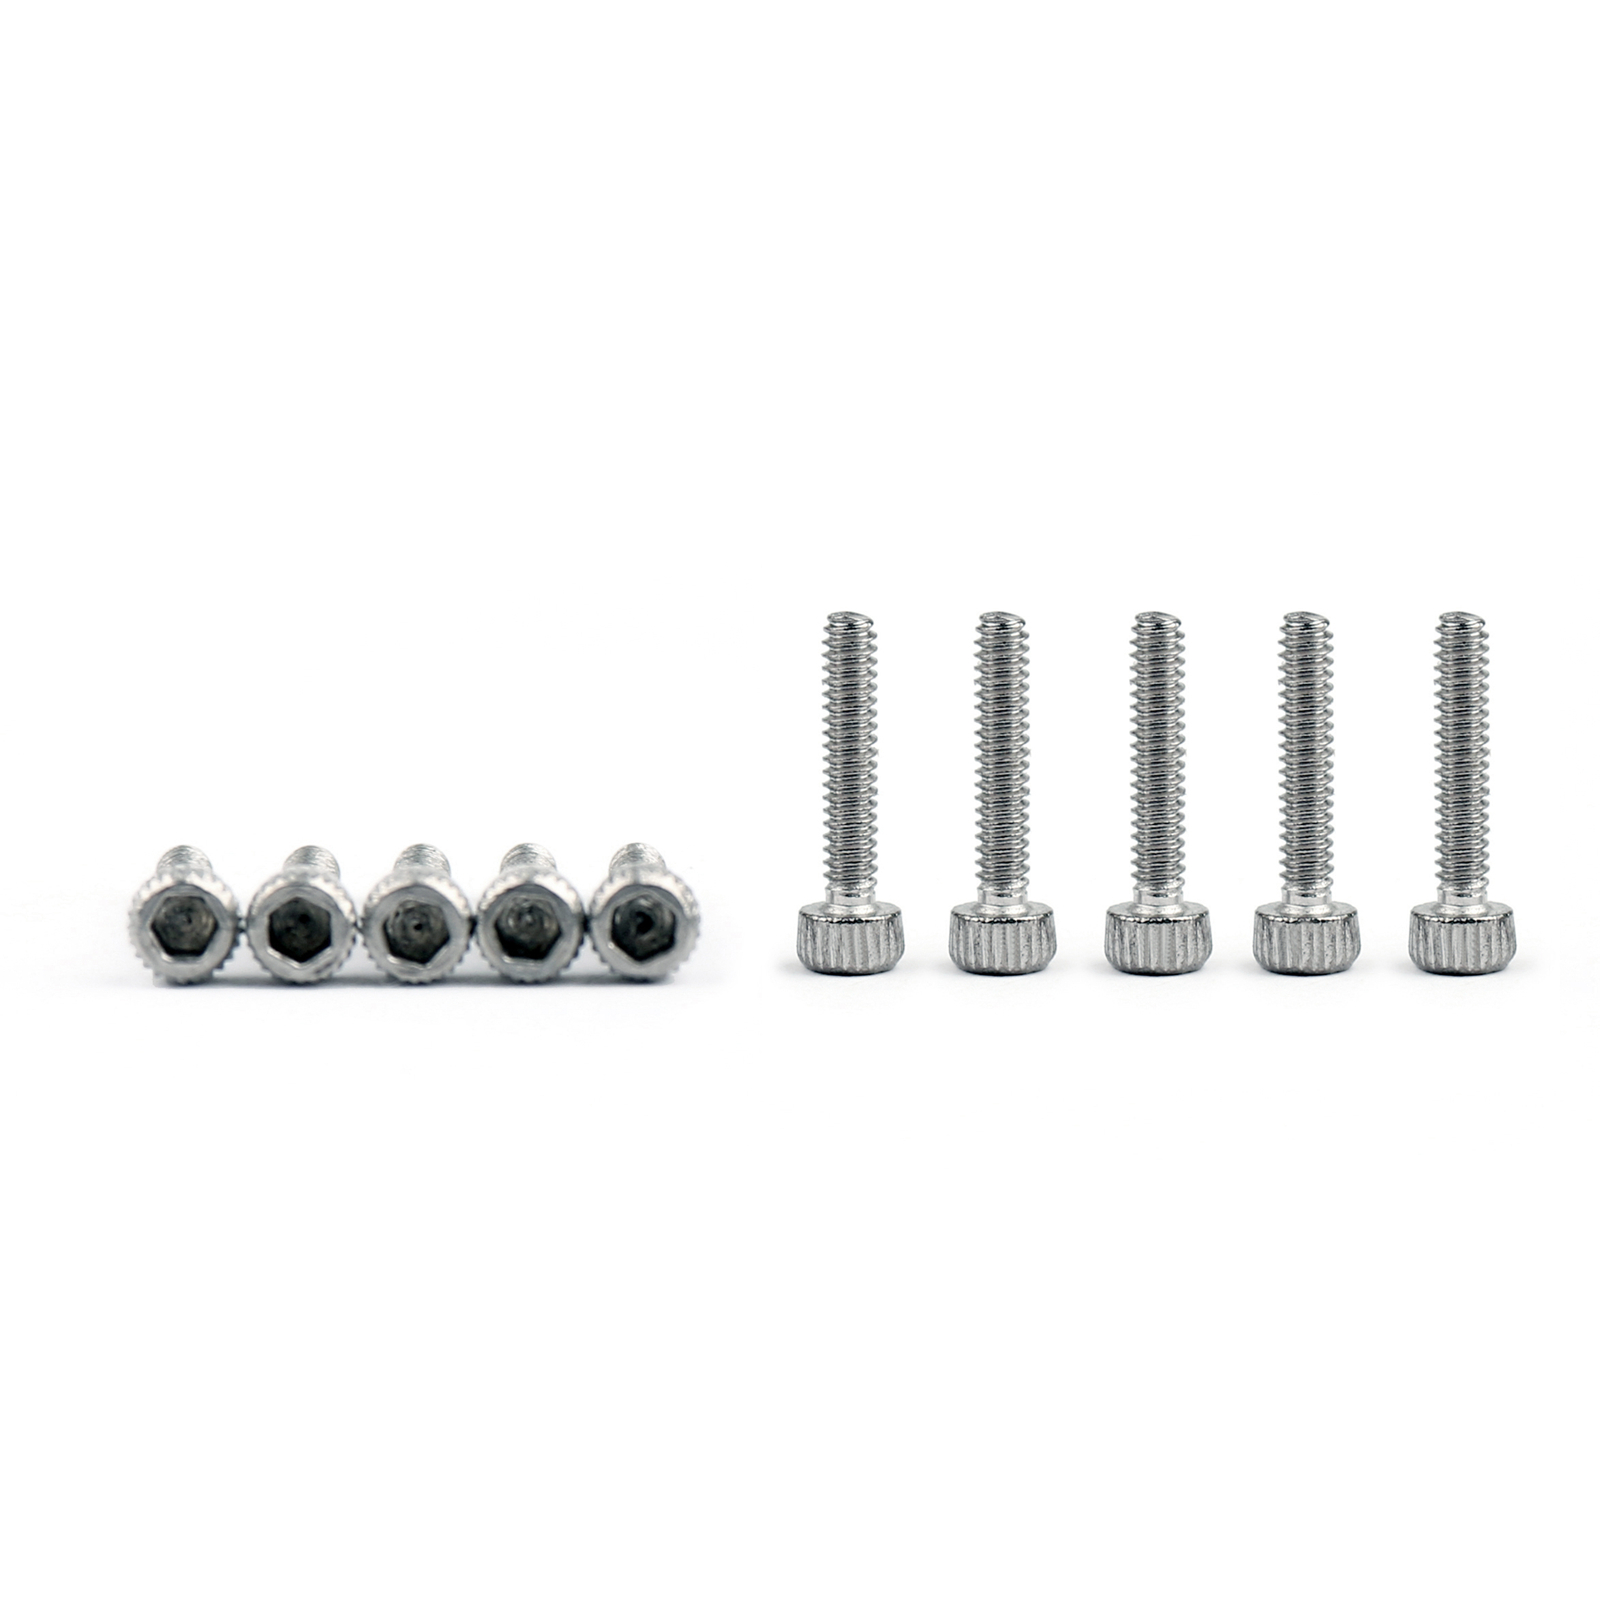 M1 4 Allen Bolt Hex Socket Head Screw Stainless 304 Steel